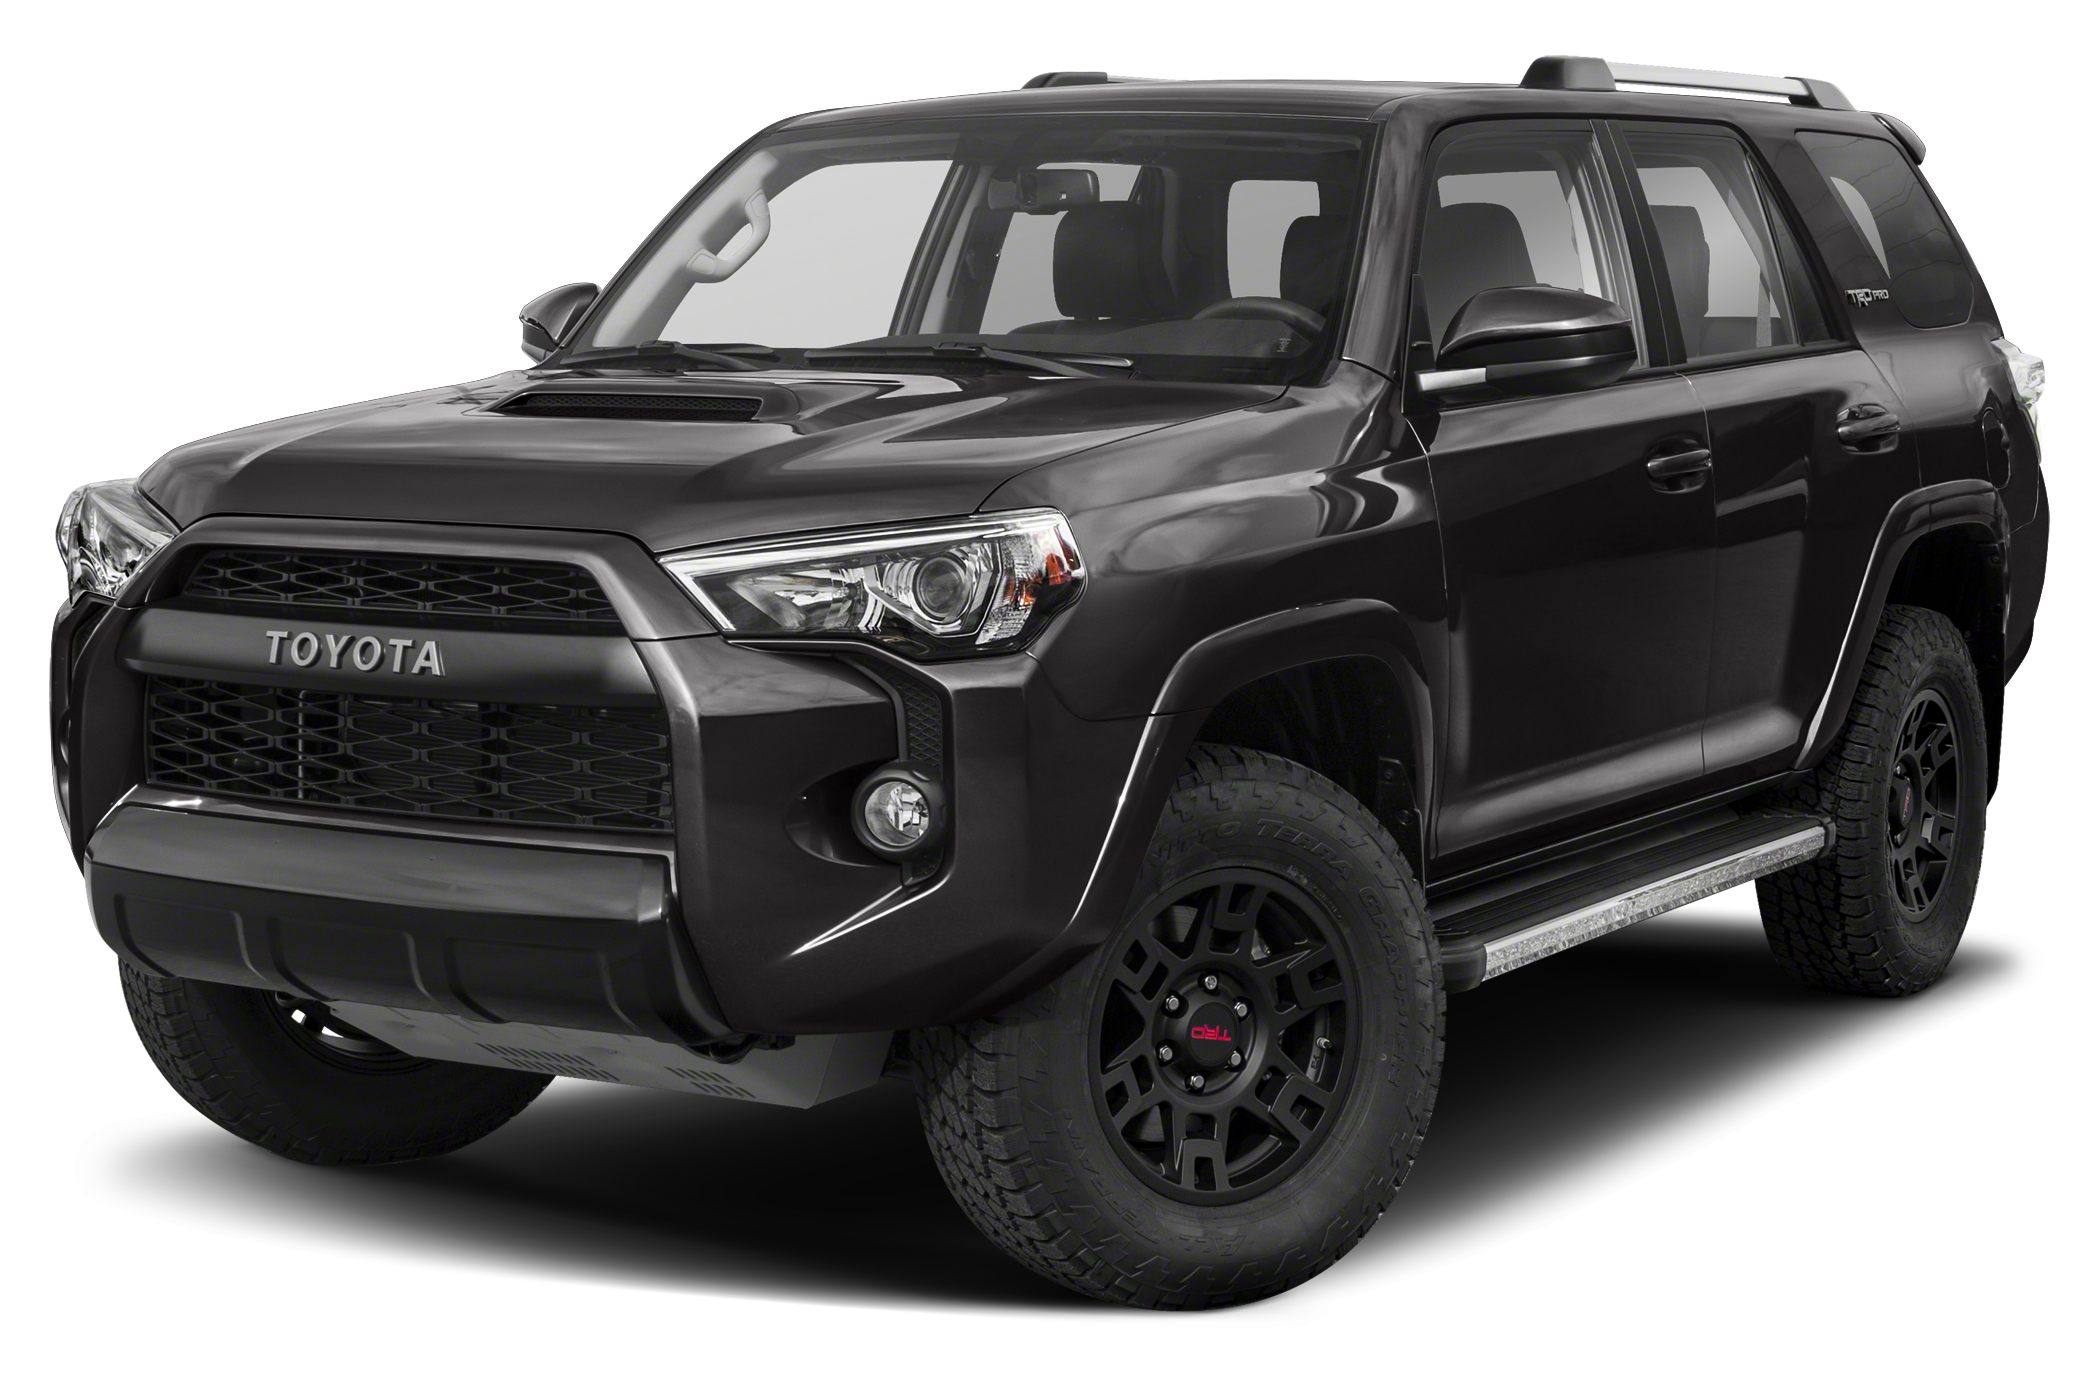 trd pro skid plate for sale ( midland texas) discussion in ' 2016 Toyota 4runner Trd Pro 4dr 4x4 Pictures